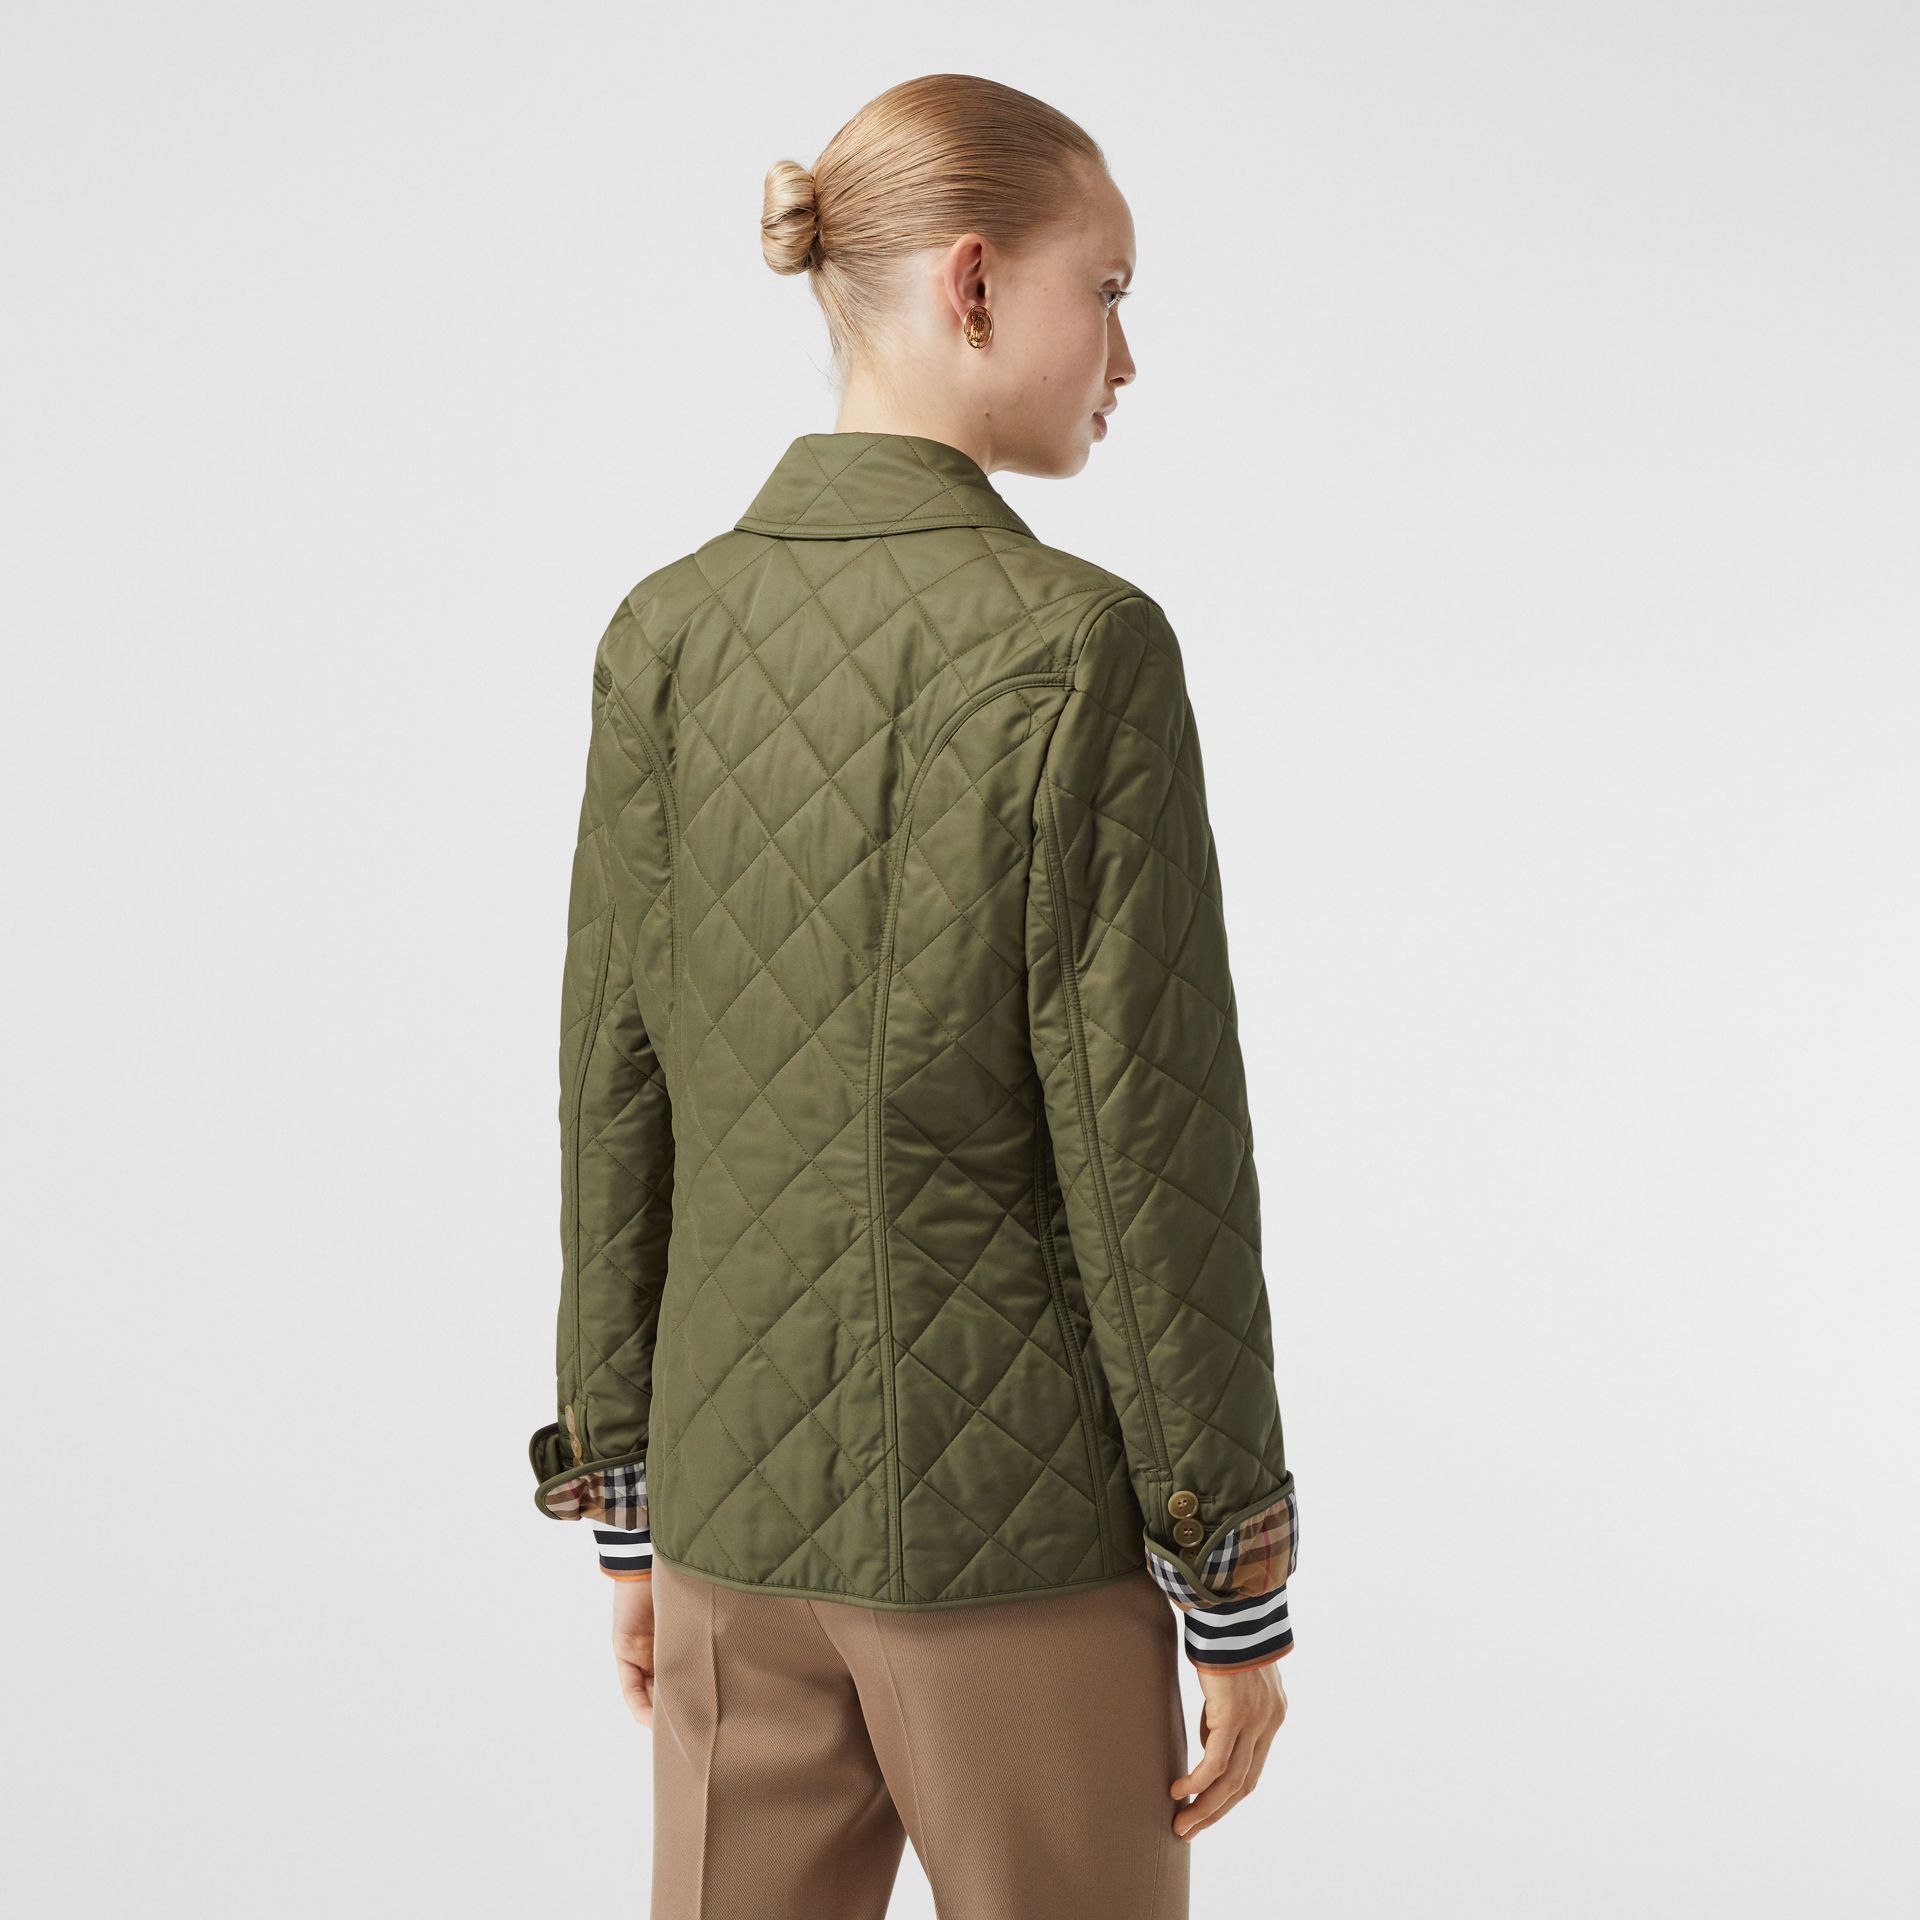 Diamond Quilted Jacket in Olive Green - Women | Burberry - gallery image 2